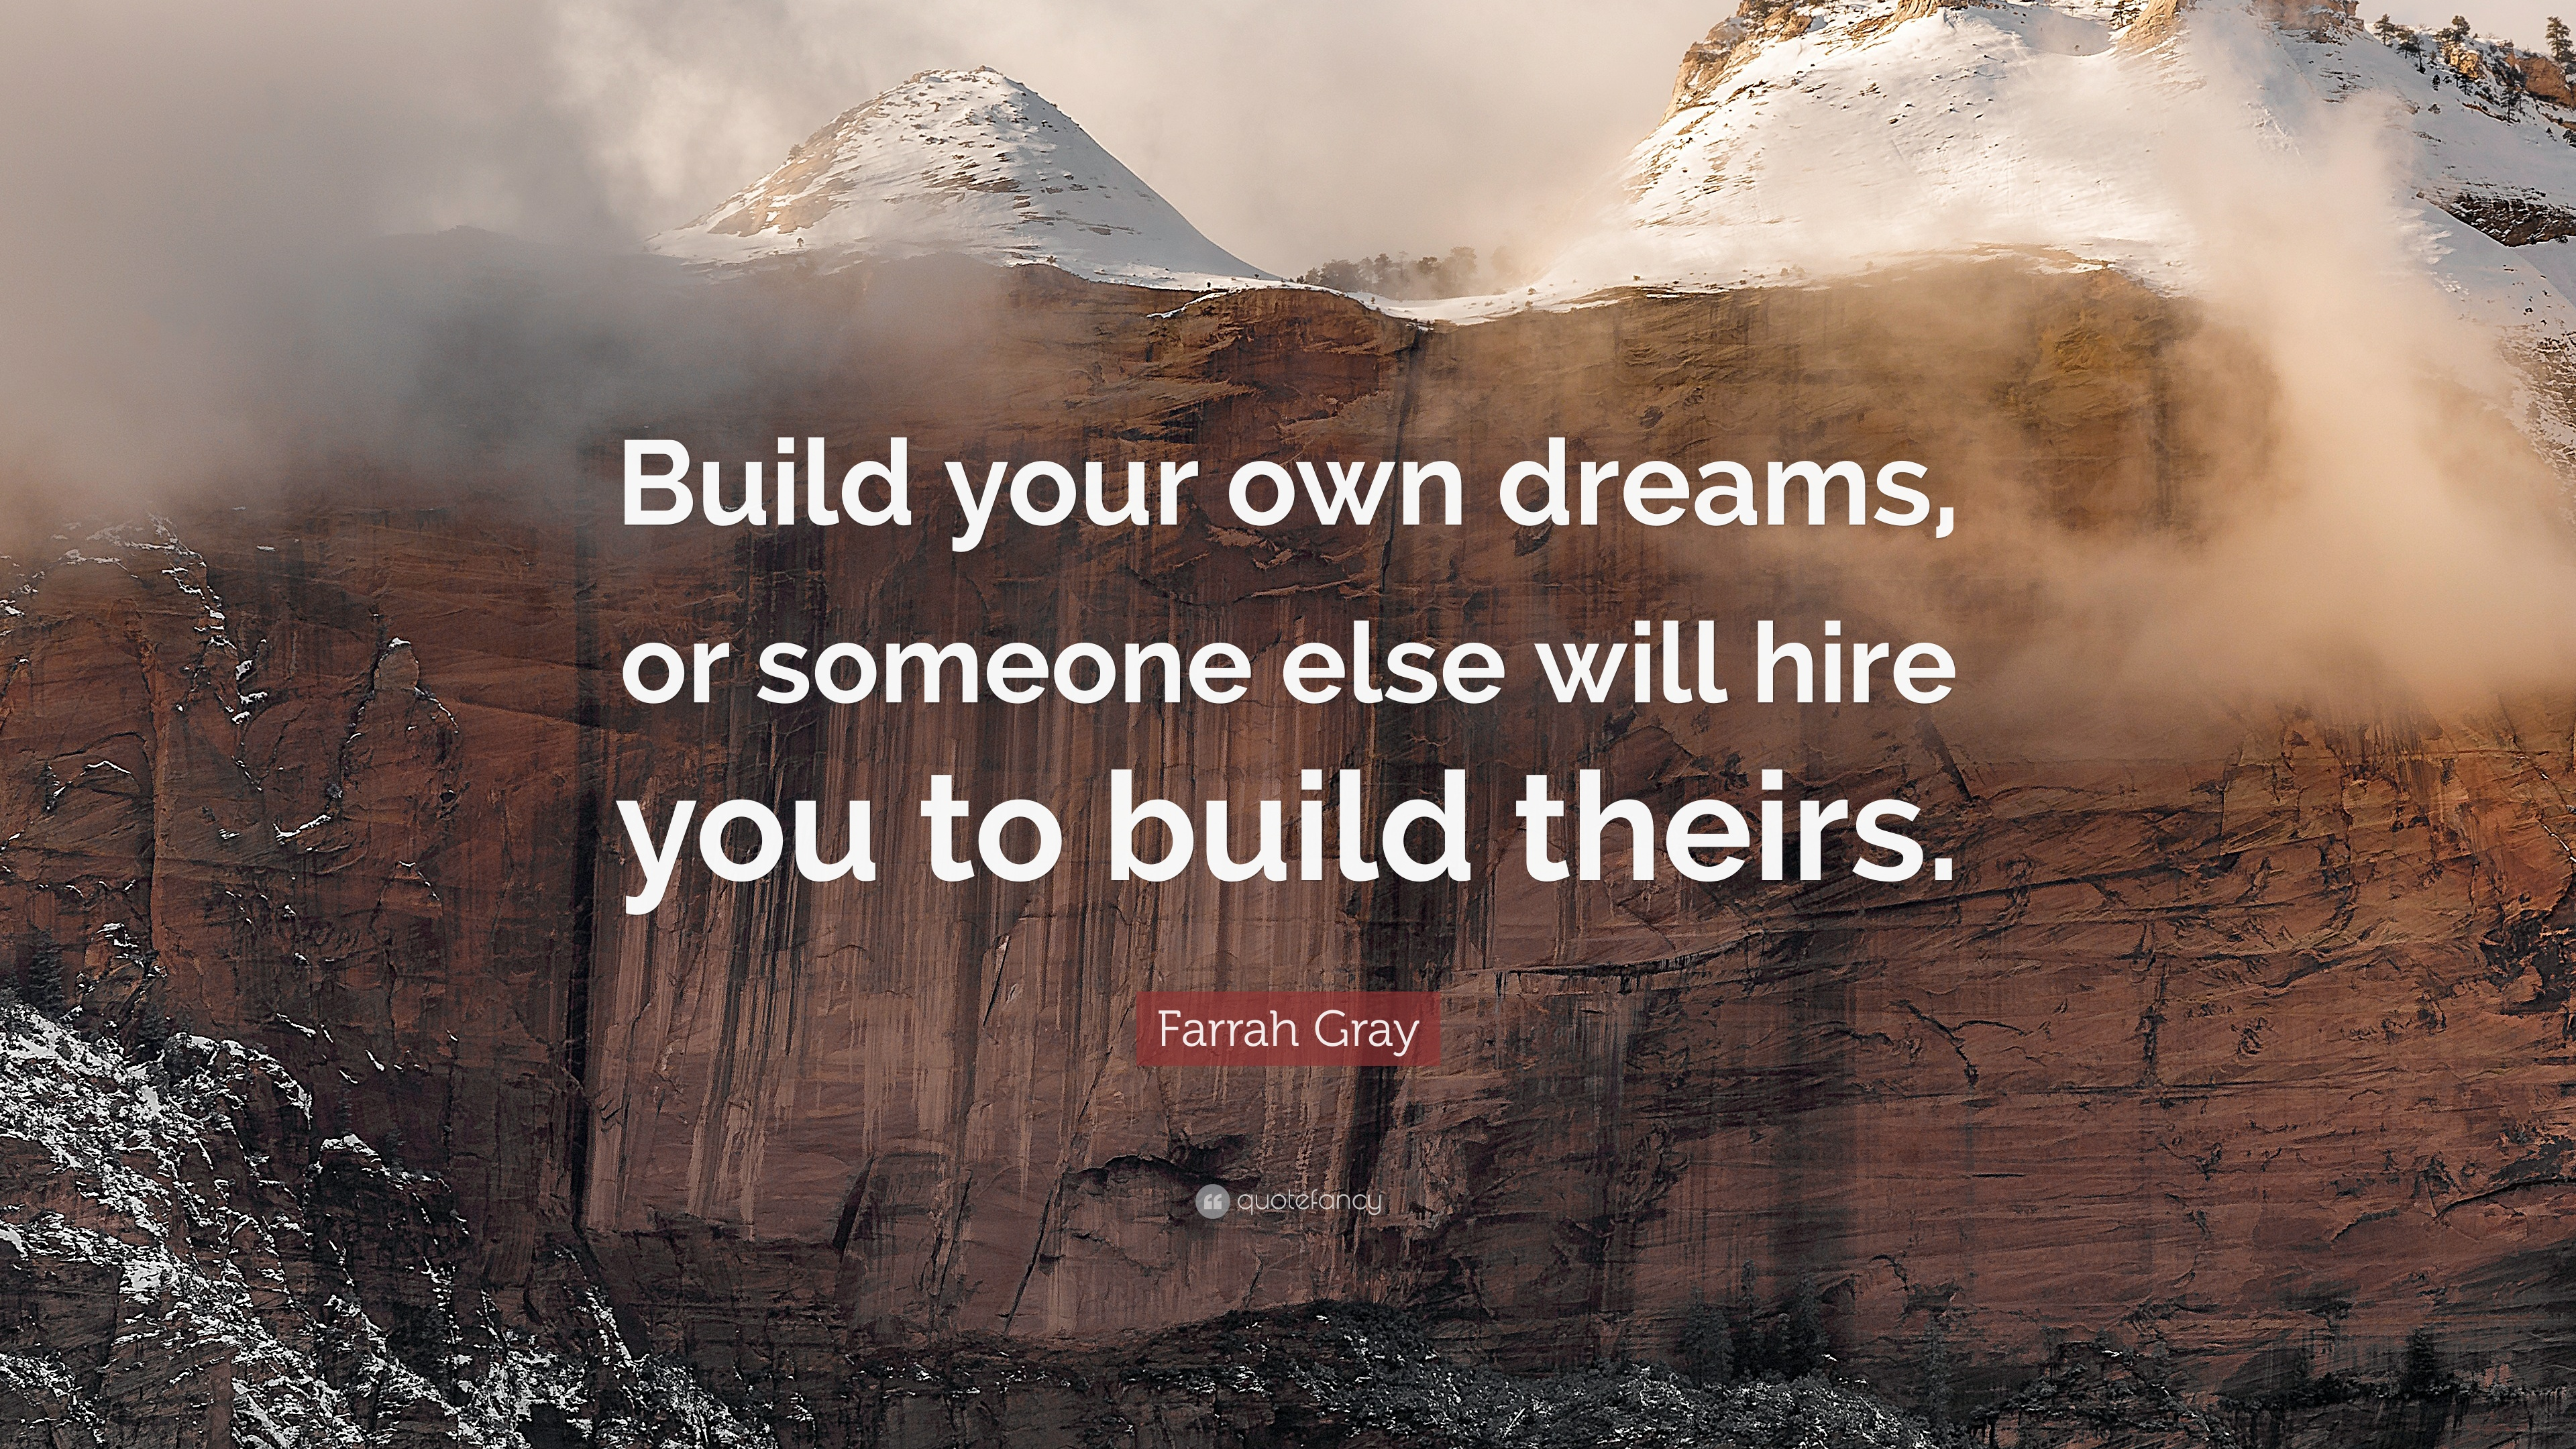 Quotes About Dreams Build Your Own Or Someone Else Will Hire You